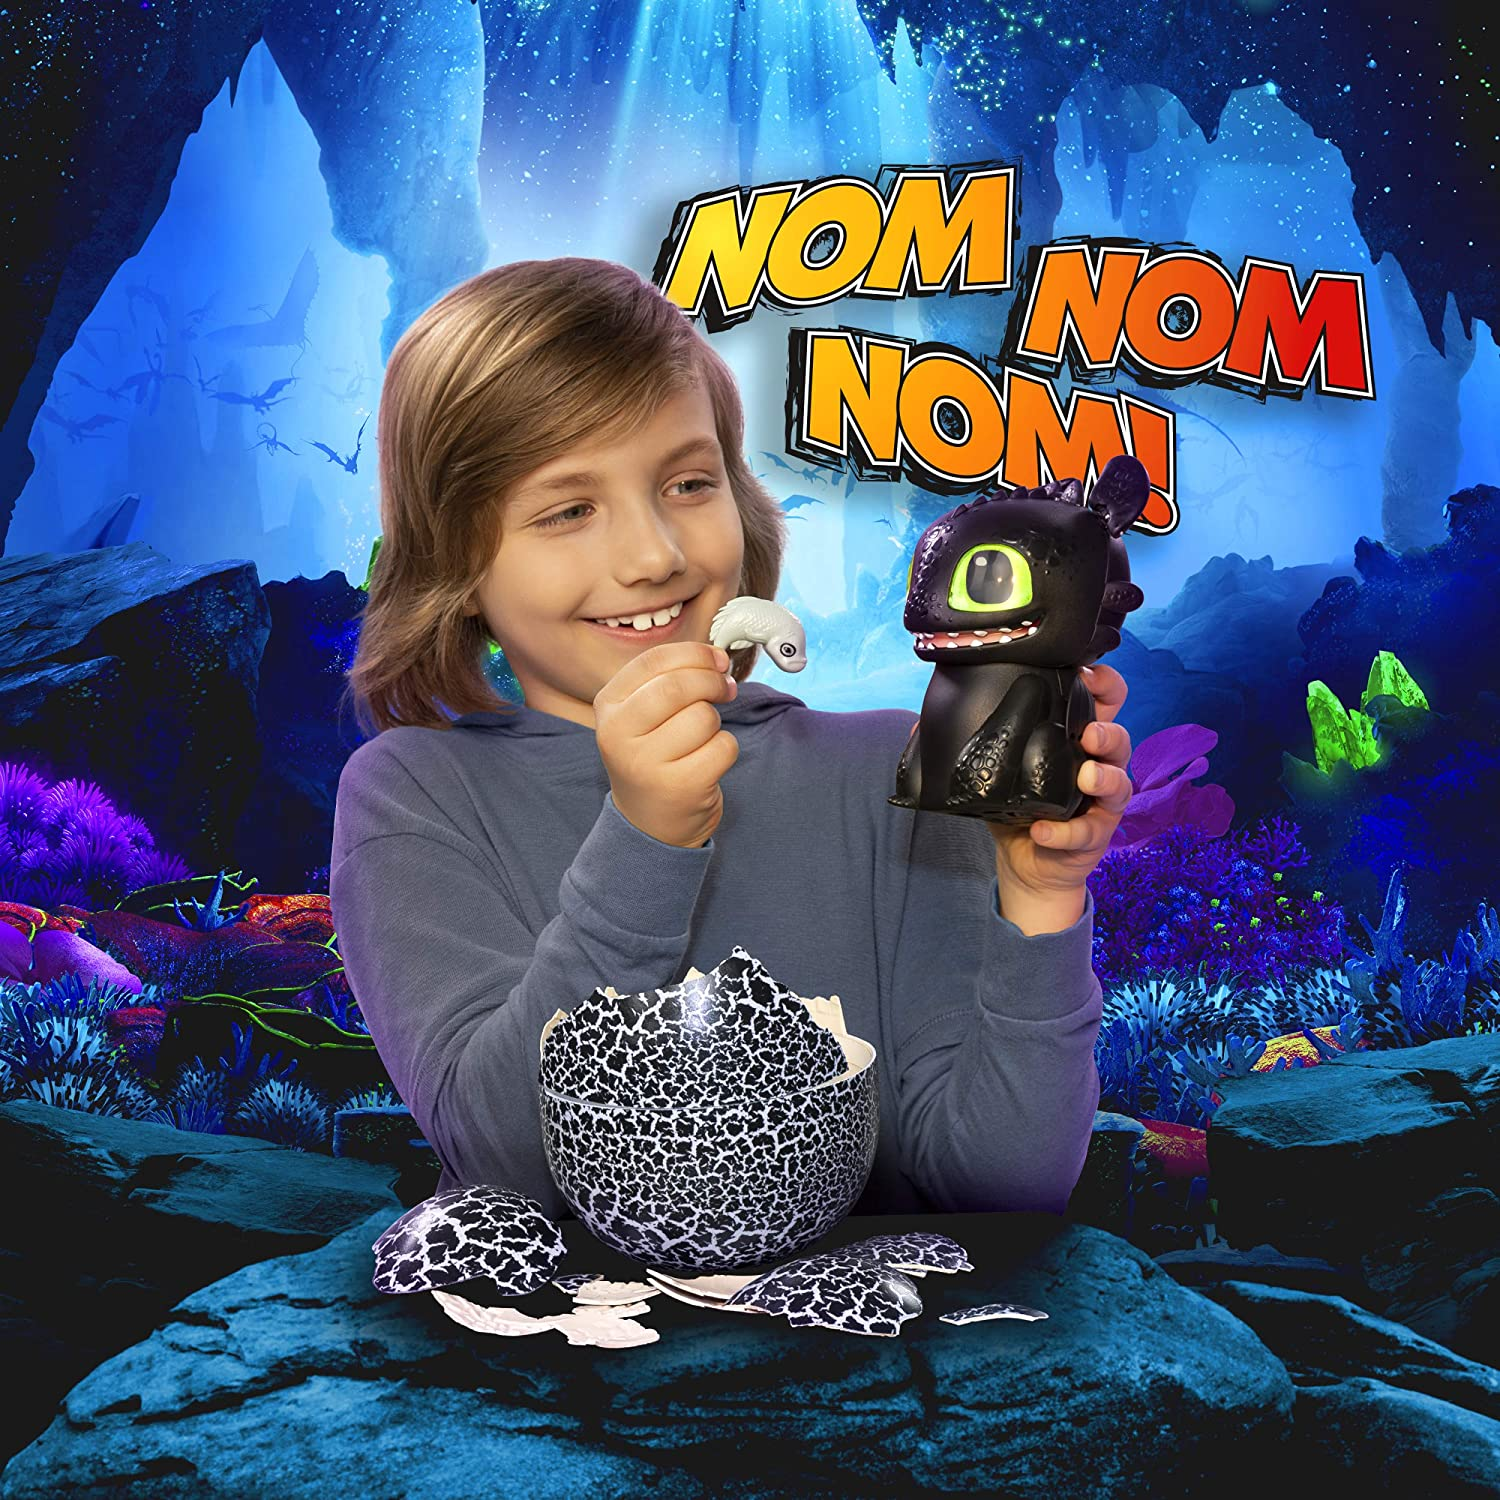 Hatching Toothless Interactive Baby Dragon with Sounds for Kids Aged 5 /& Up Dreamworks Dragons